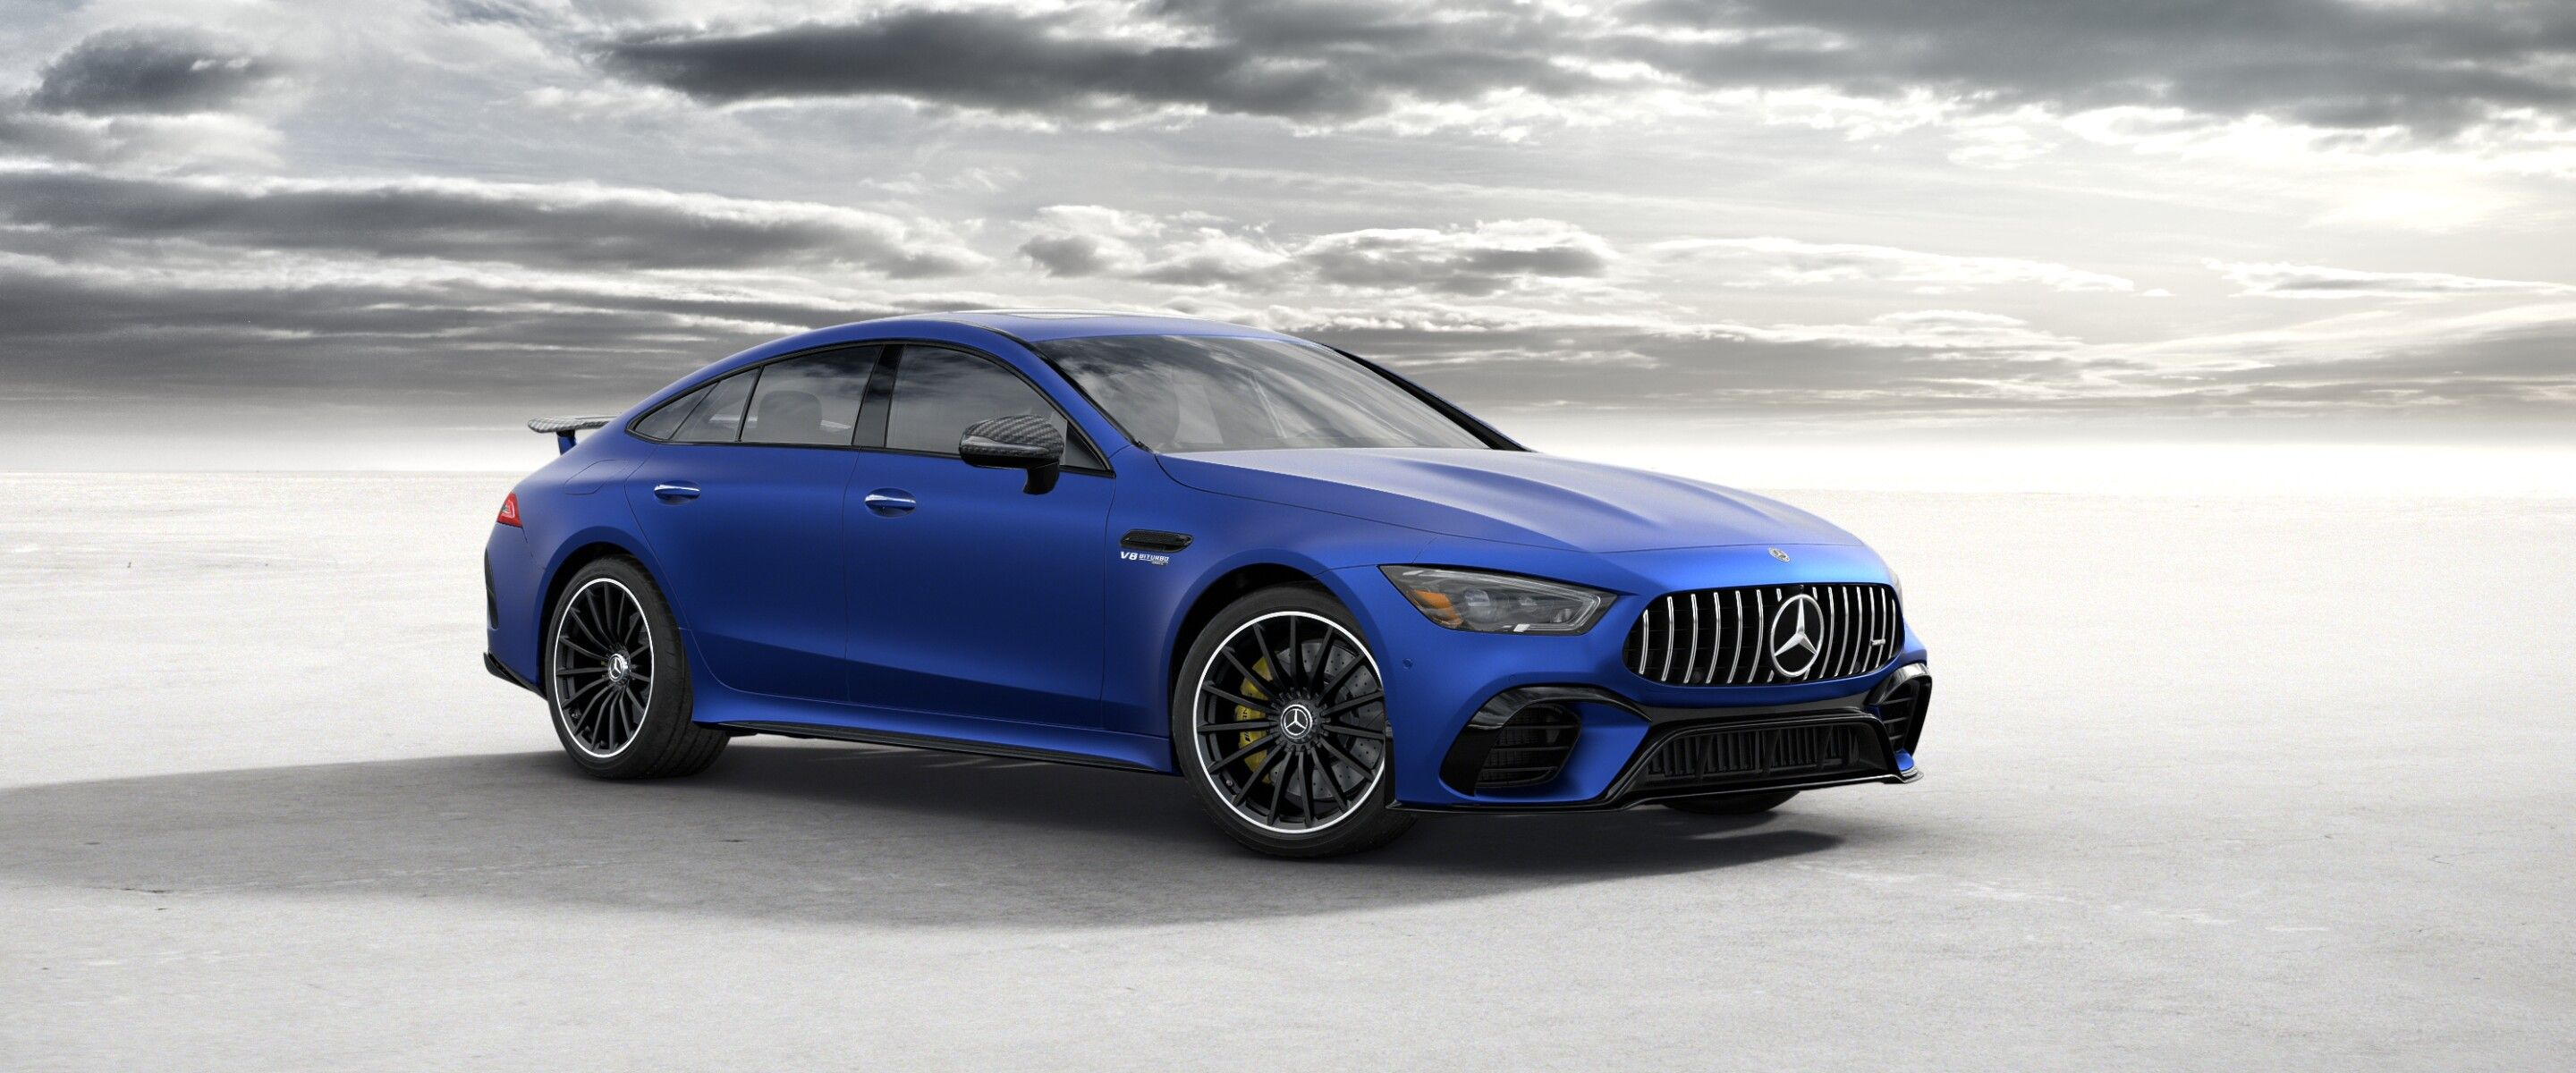 Build Your Own 2019 Amg Gt 63 S 4 Door Coupe Mercedes Benz Usa